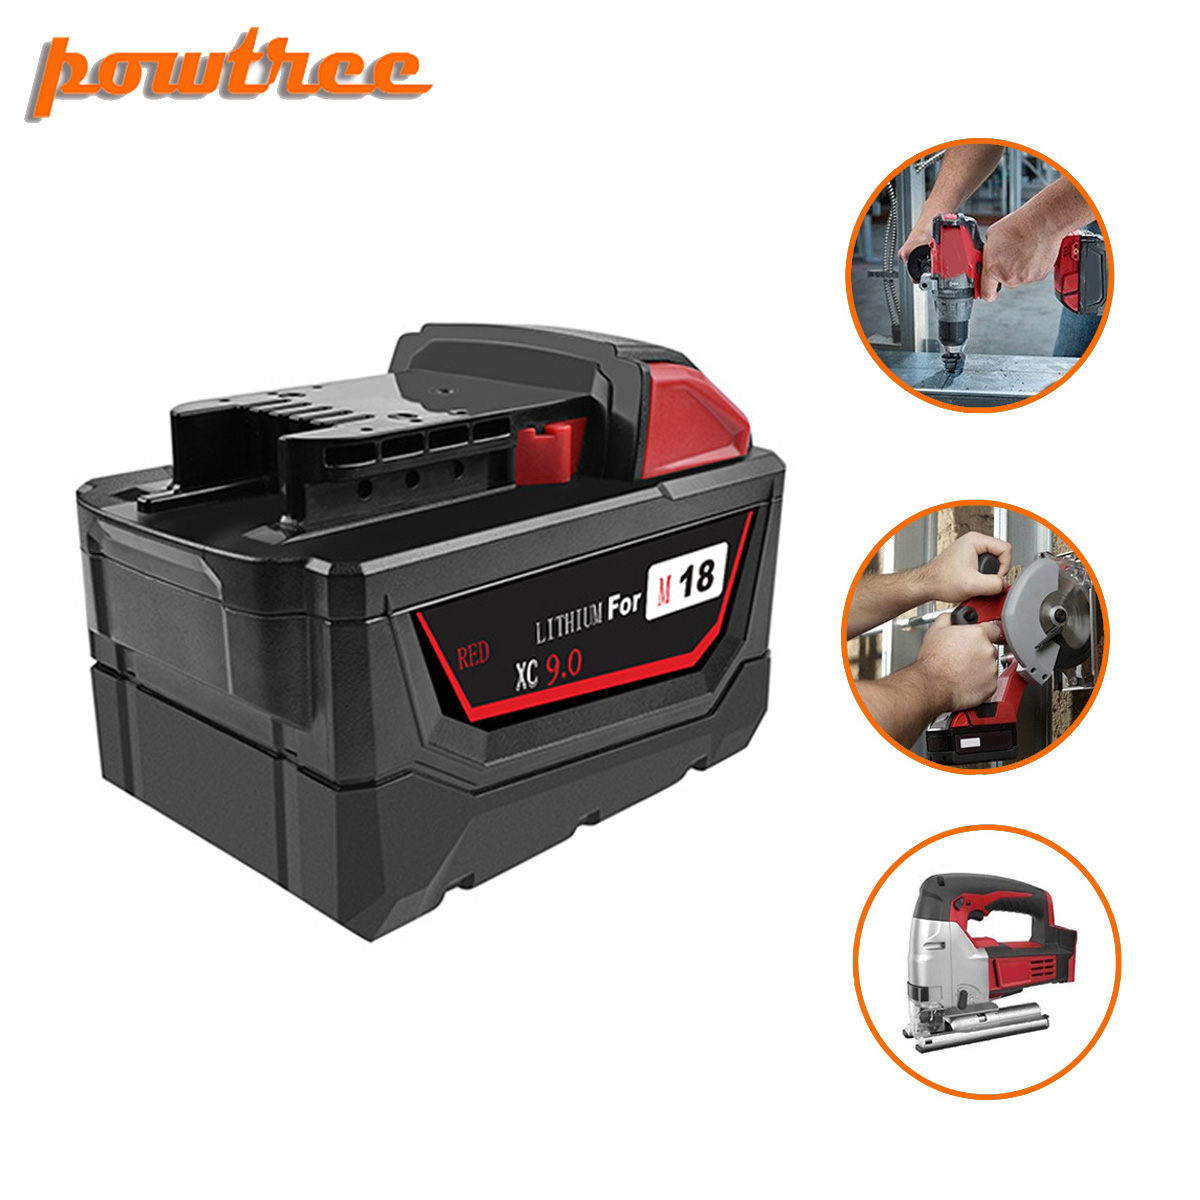 Powtree 9.0Ah Li-ion Tool Battery For Milwaukee M18 48-11-1815 48-11-1850 Repalcement M18 Battery 2646-20 2642-21CT L3